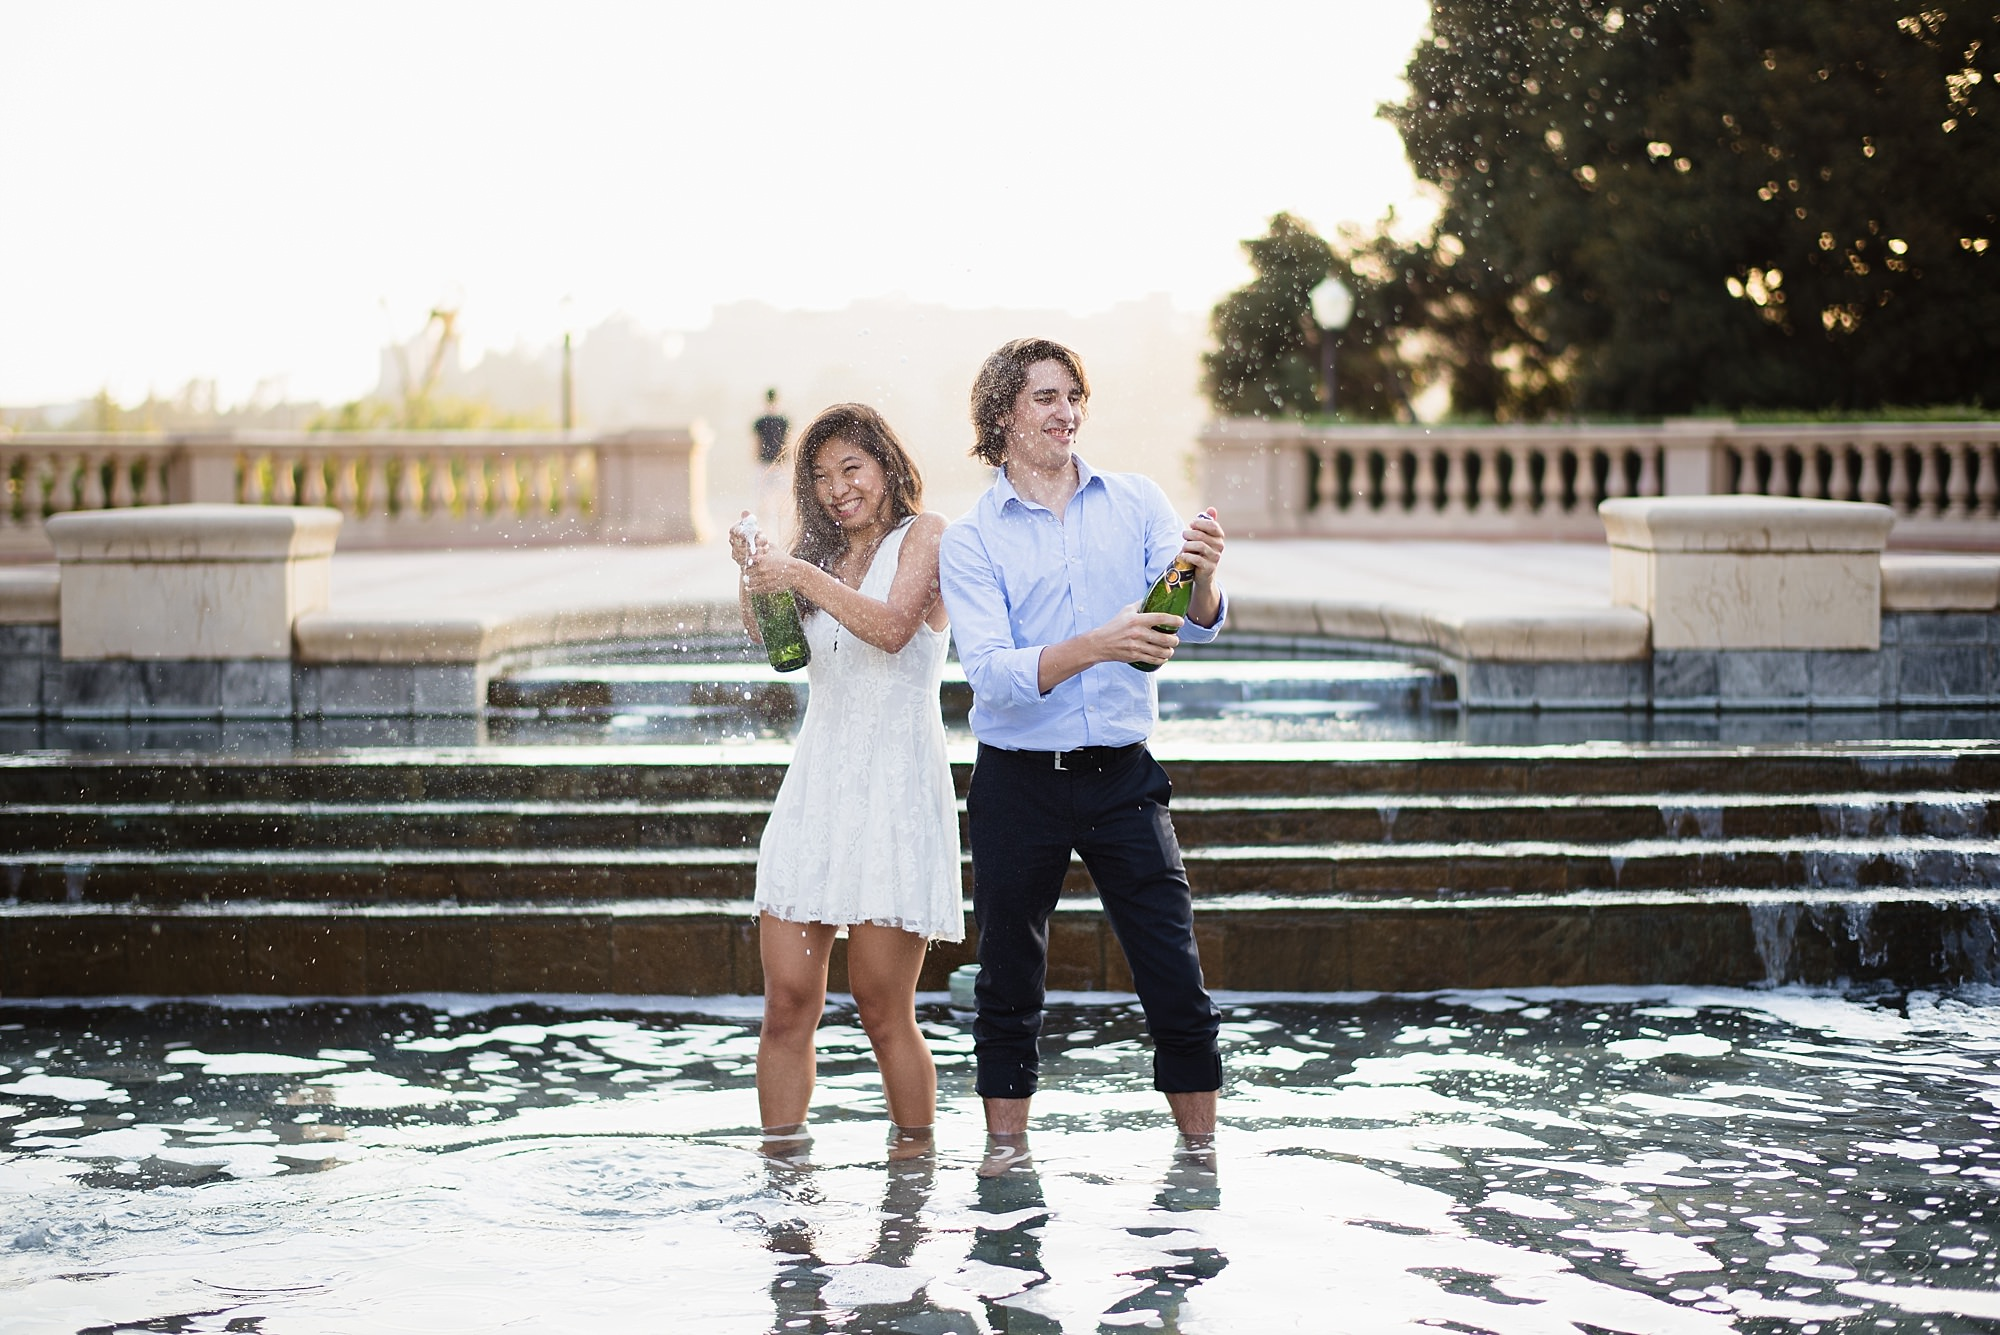 cute and fun graduation senior portrait of a couple popping champagne bottles in shapiro fountain during sunset at ucla in los angeles